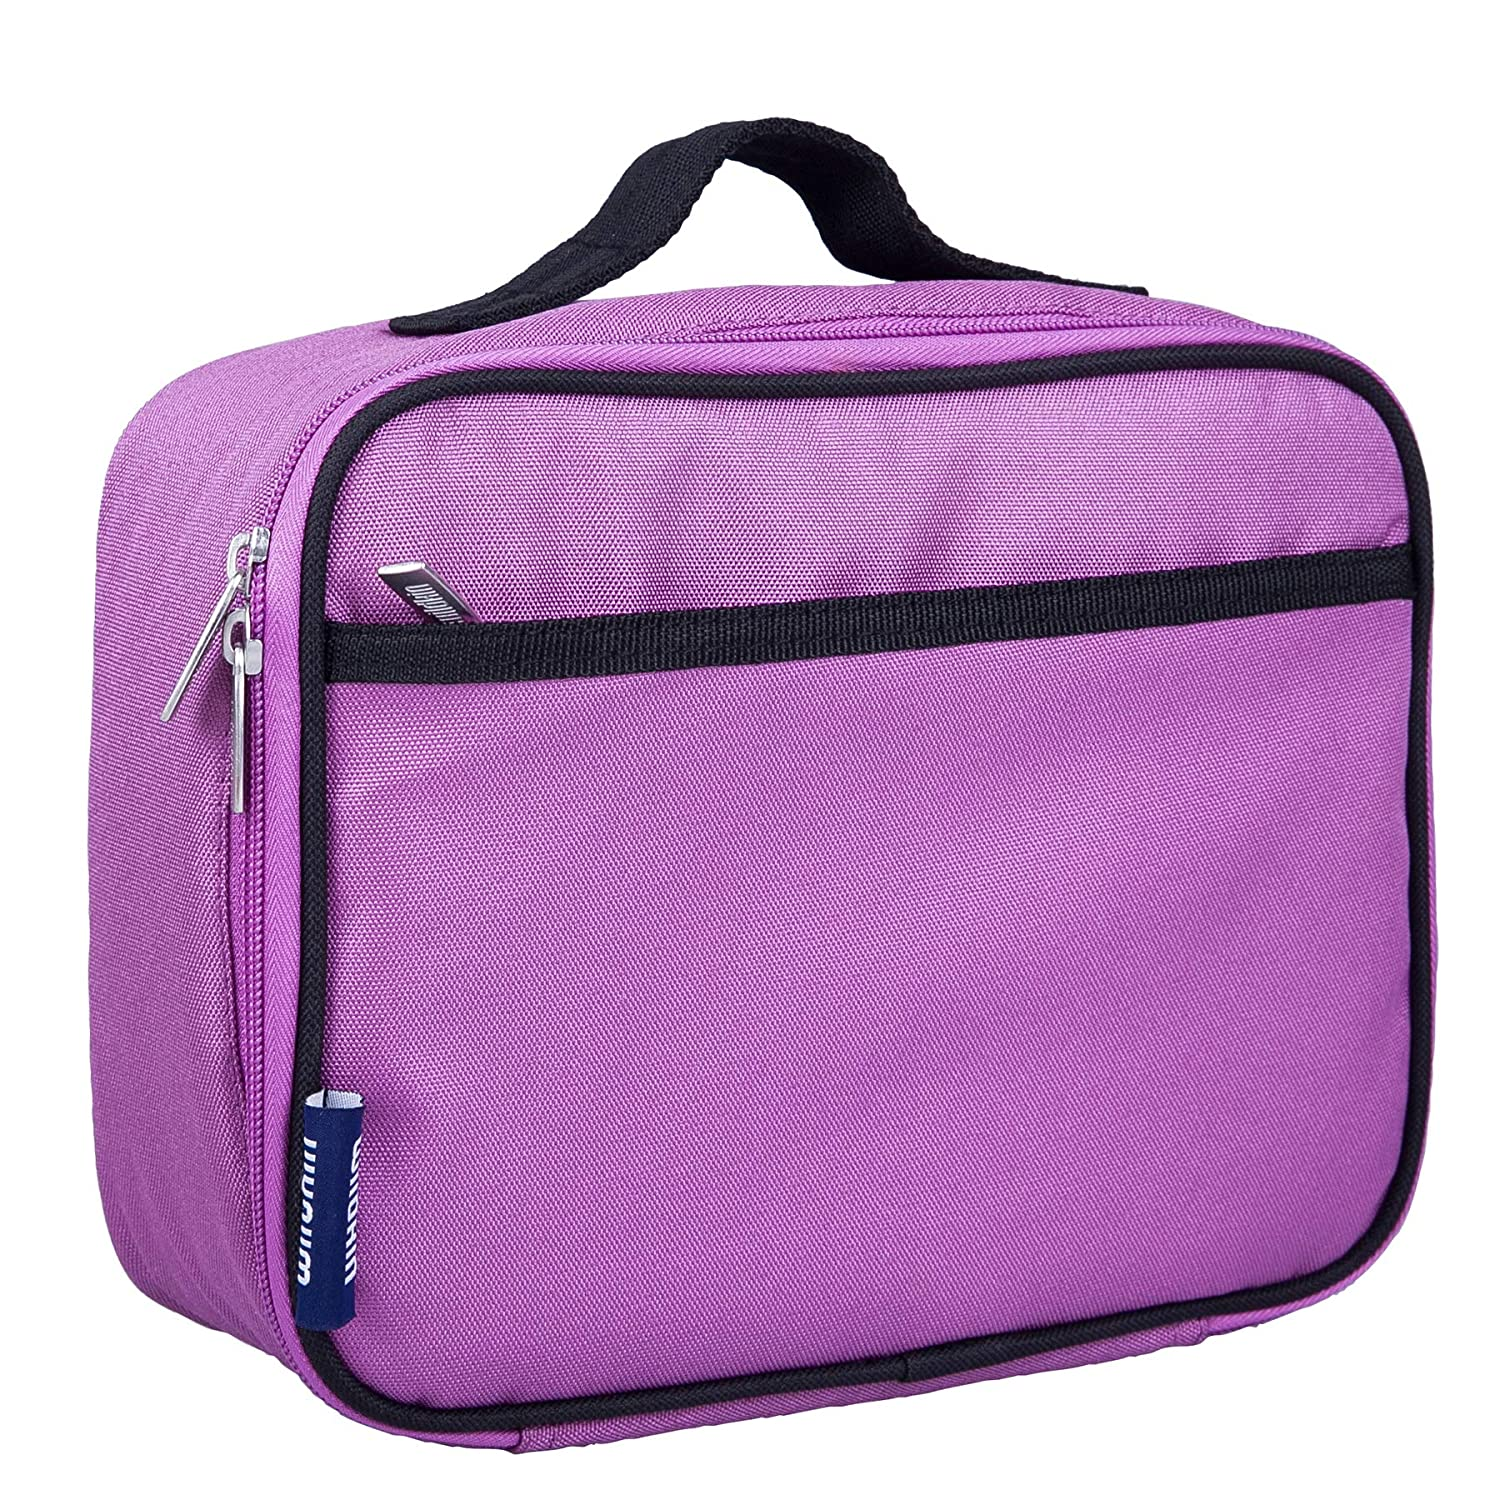 Wildkin Flamingo Pink Lunch Box, One Size 33604